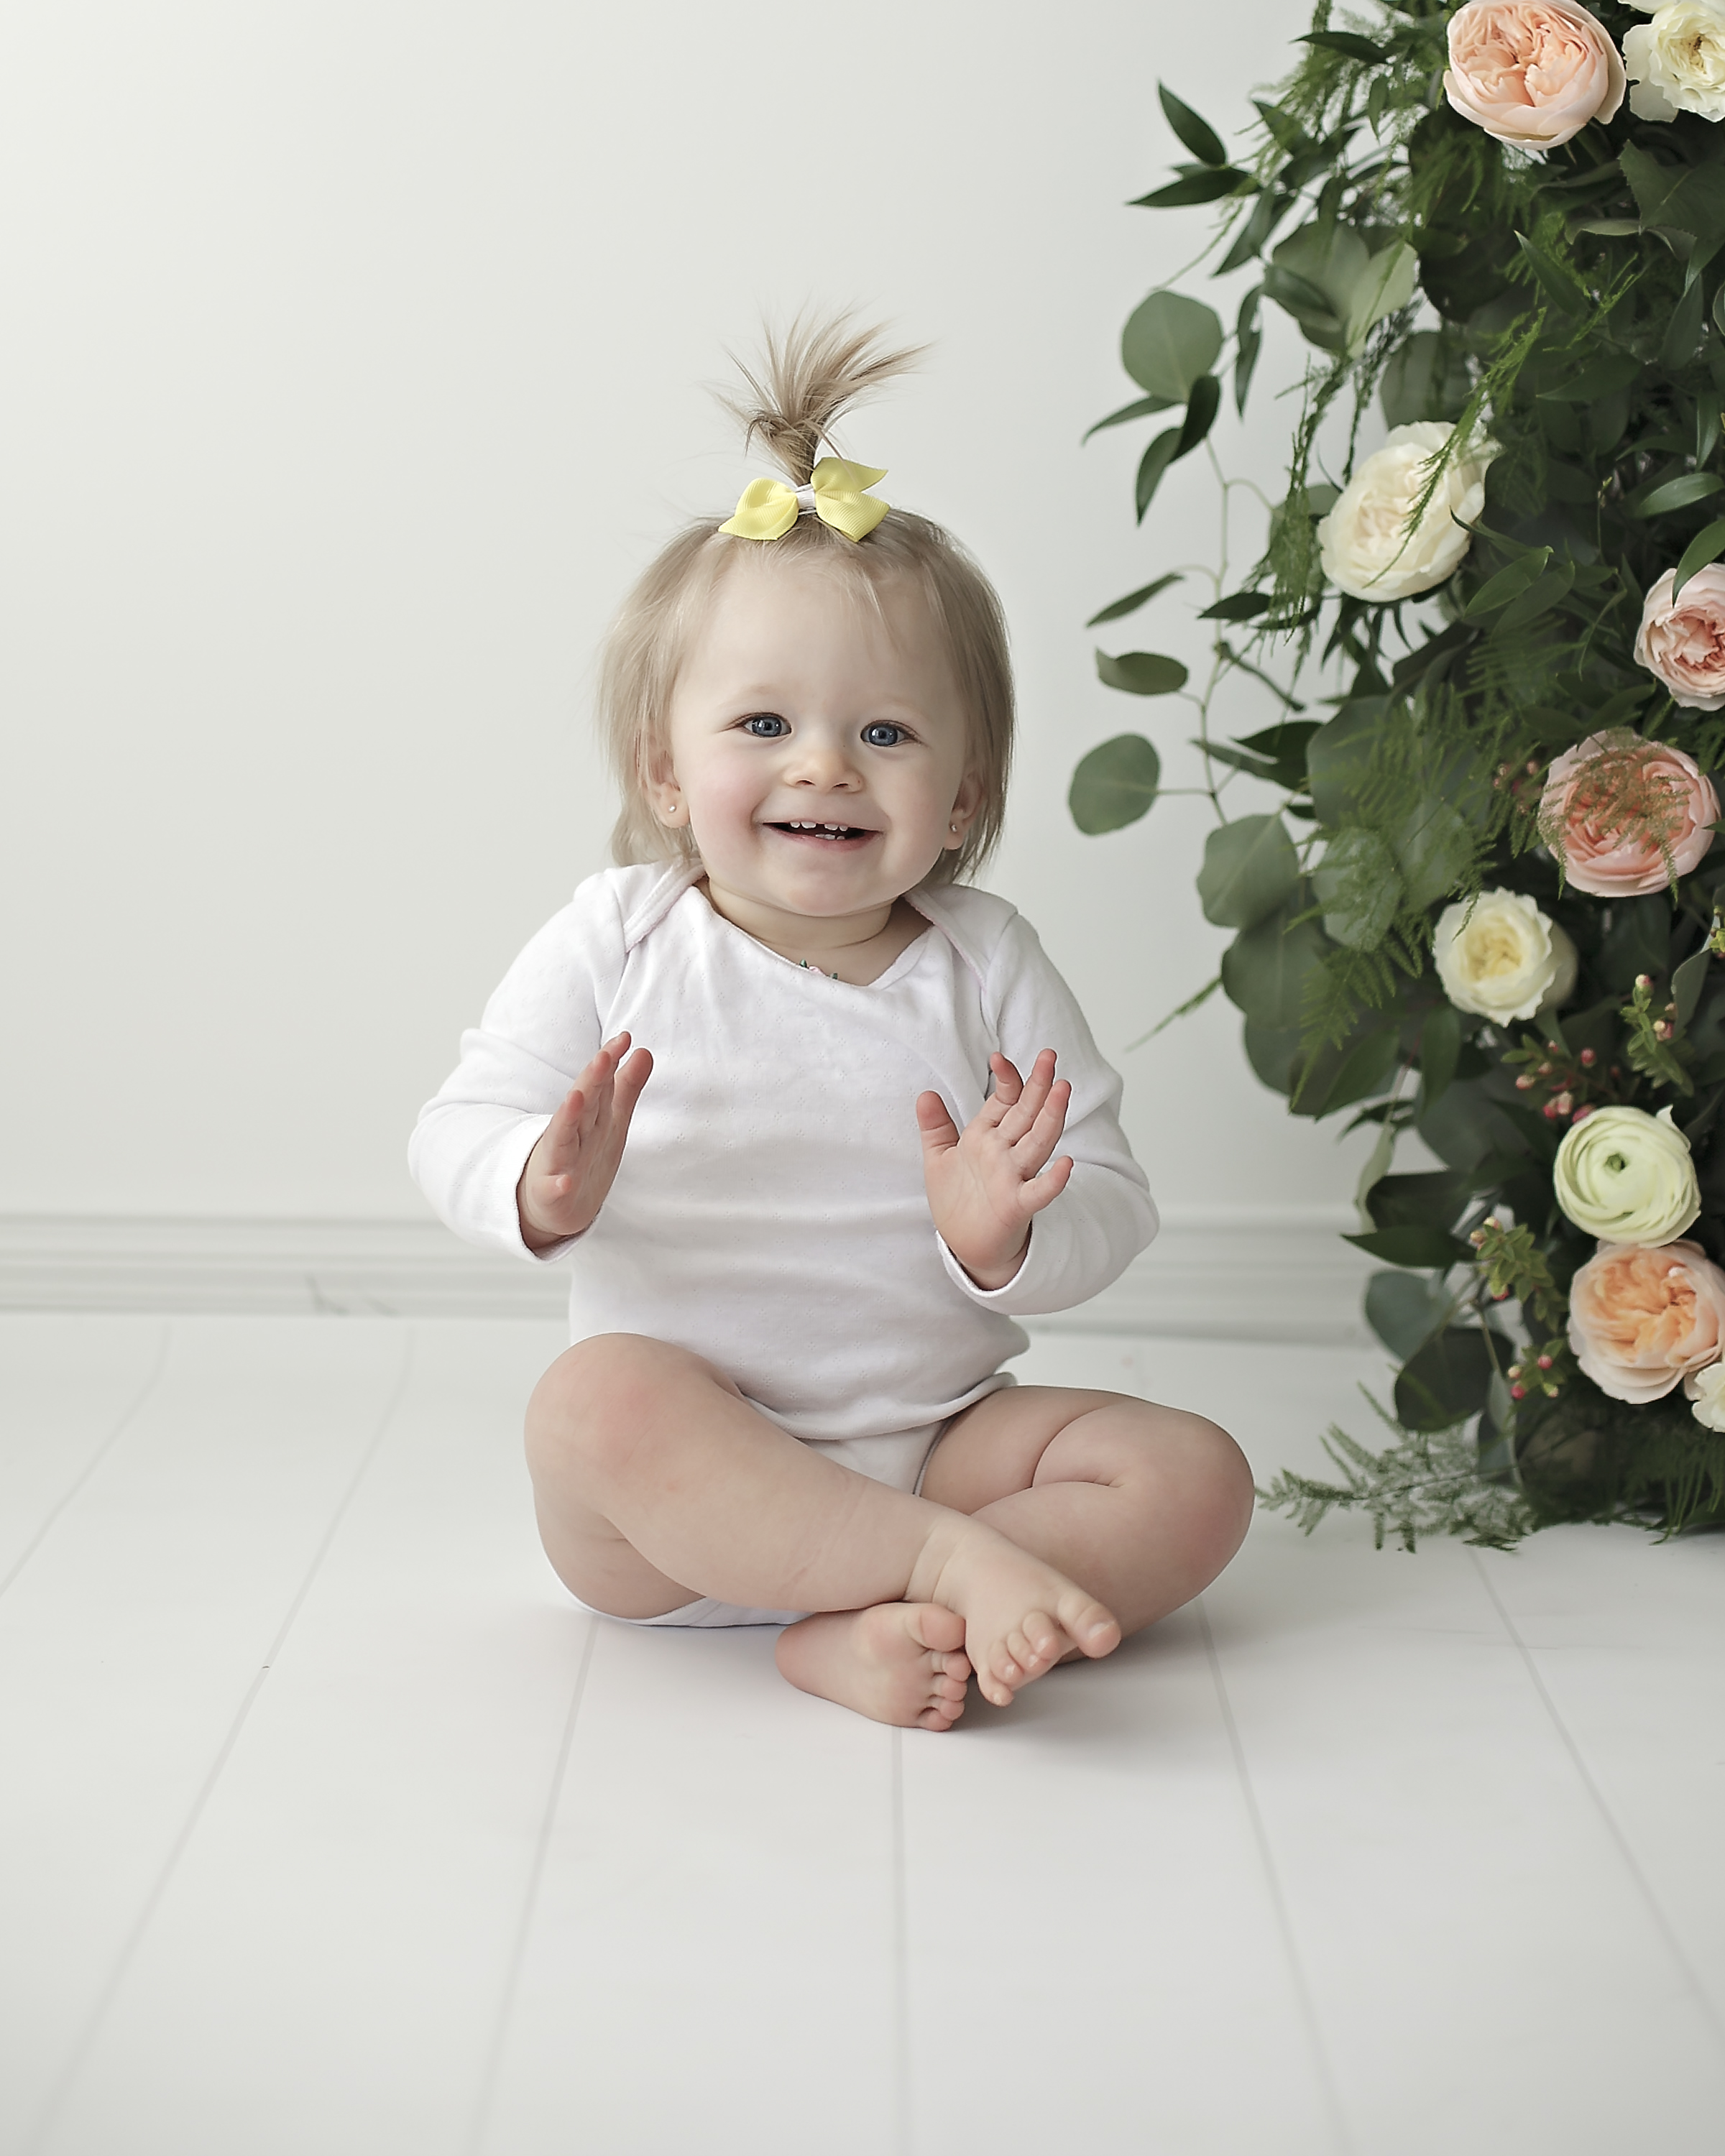 Petra_King_Photography_FirstBirthday_FreshFlowers_StyledShoot_AspenFlorist